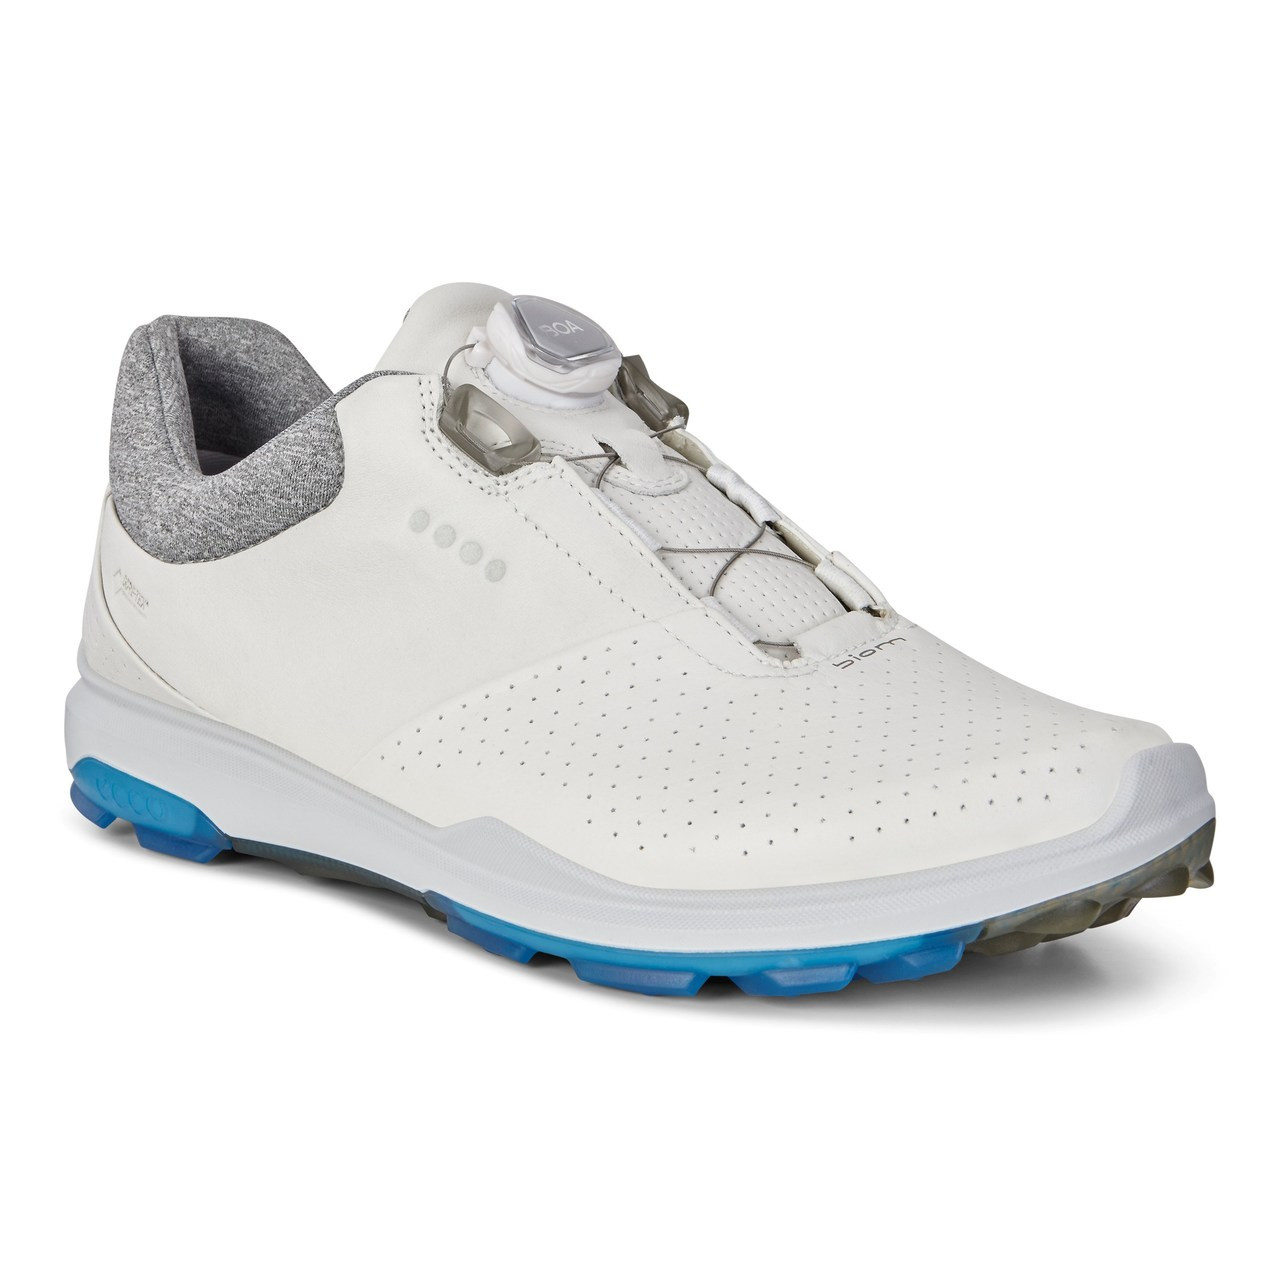 649e22c0 Ecco Mens Biom Hybrid 3 Goretex Boa Golf Shoes White Dynasty